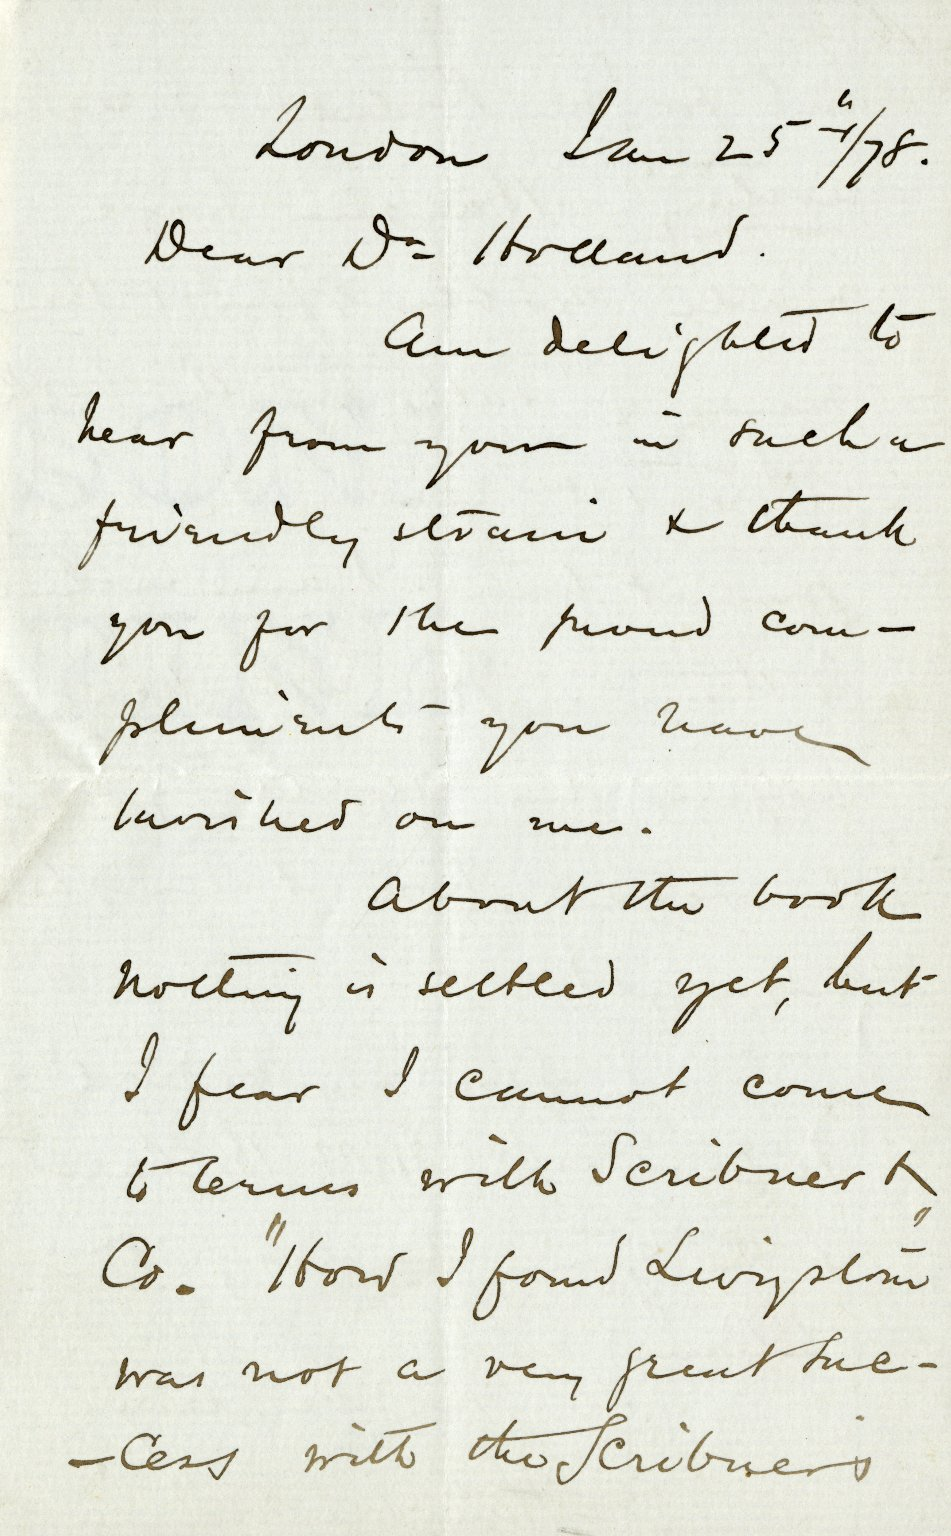 Stanley, Henry M. ALS, 2 pages, January 25, 1878.